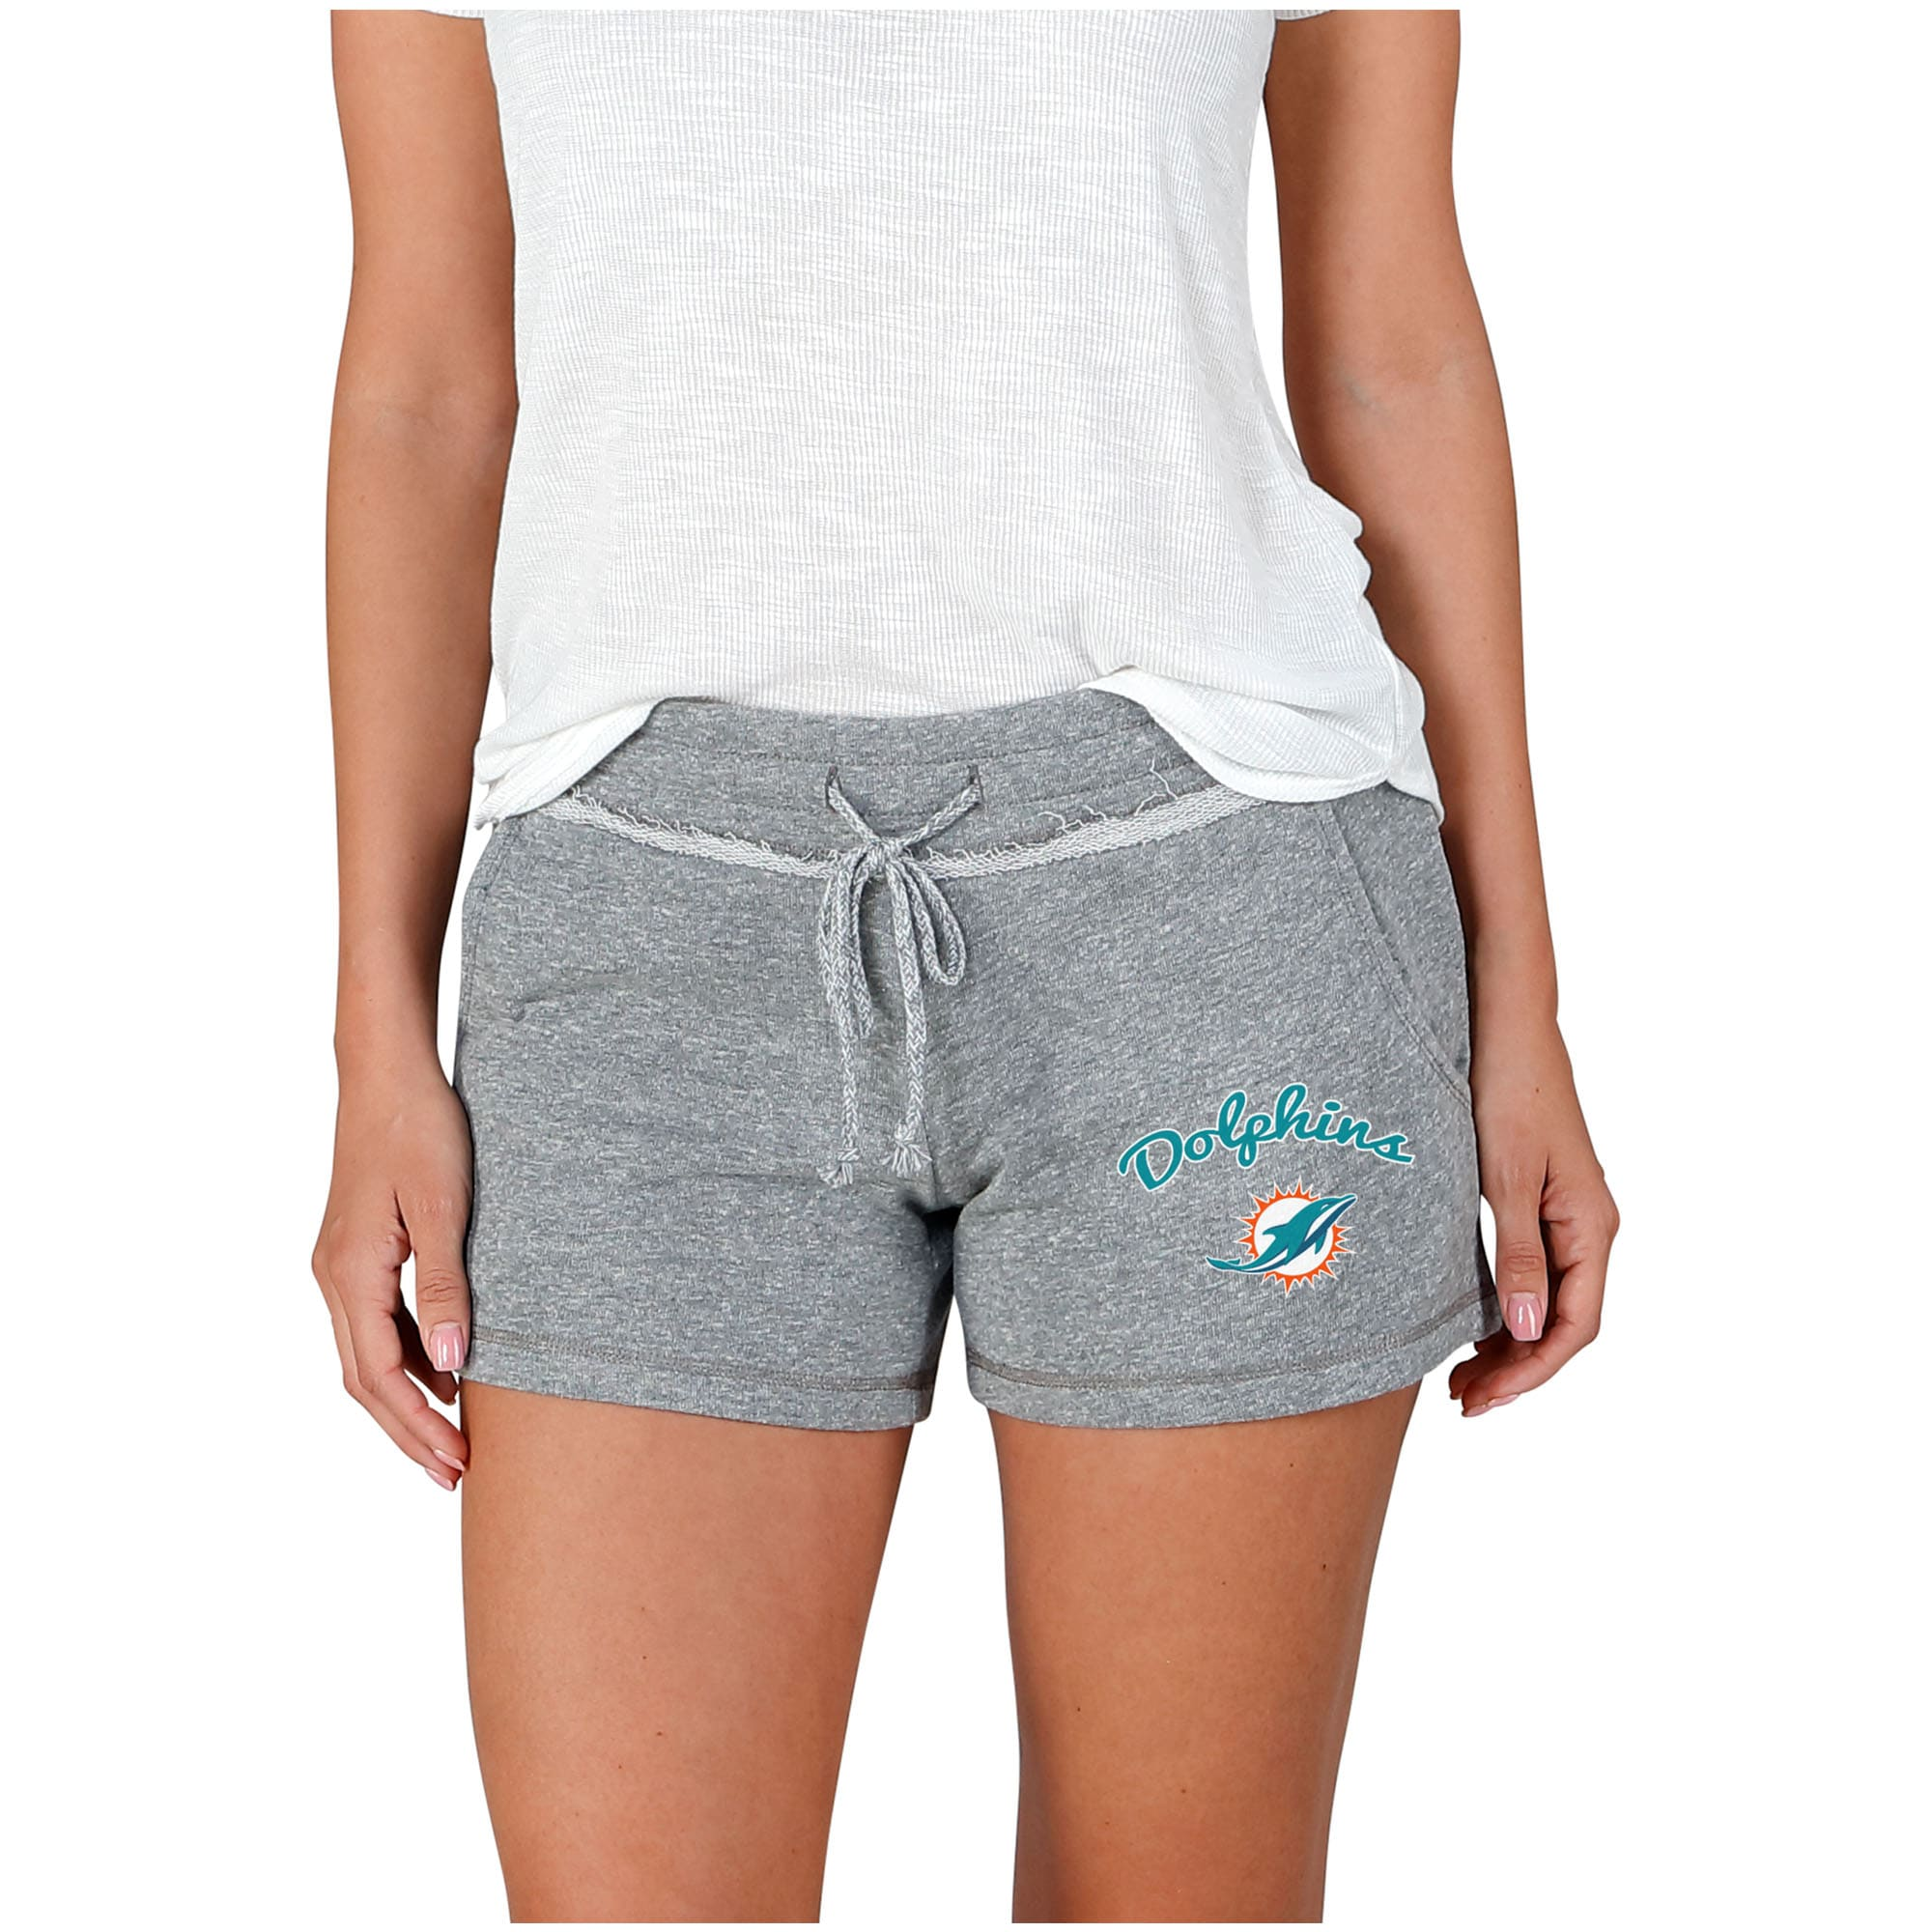 Miami Dolphins Concepts Sport Women's Mainstream Terry Shorts - Gray